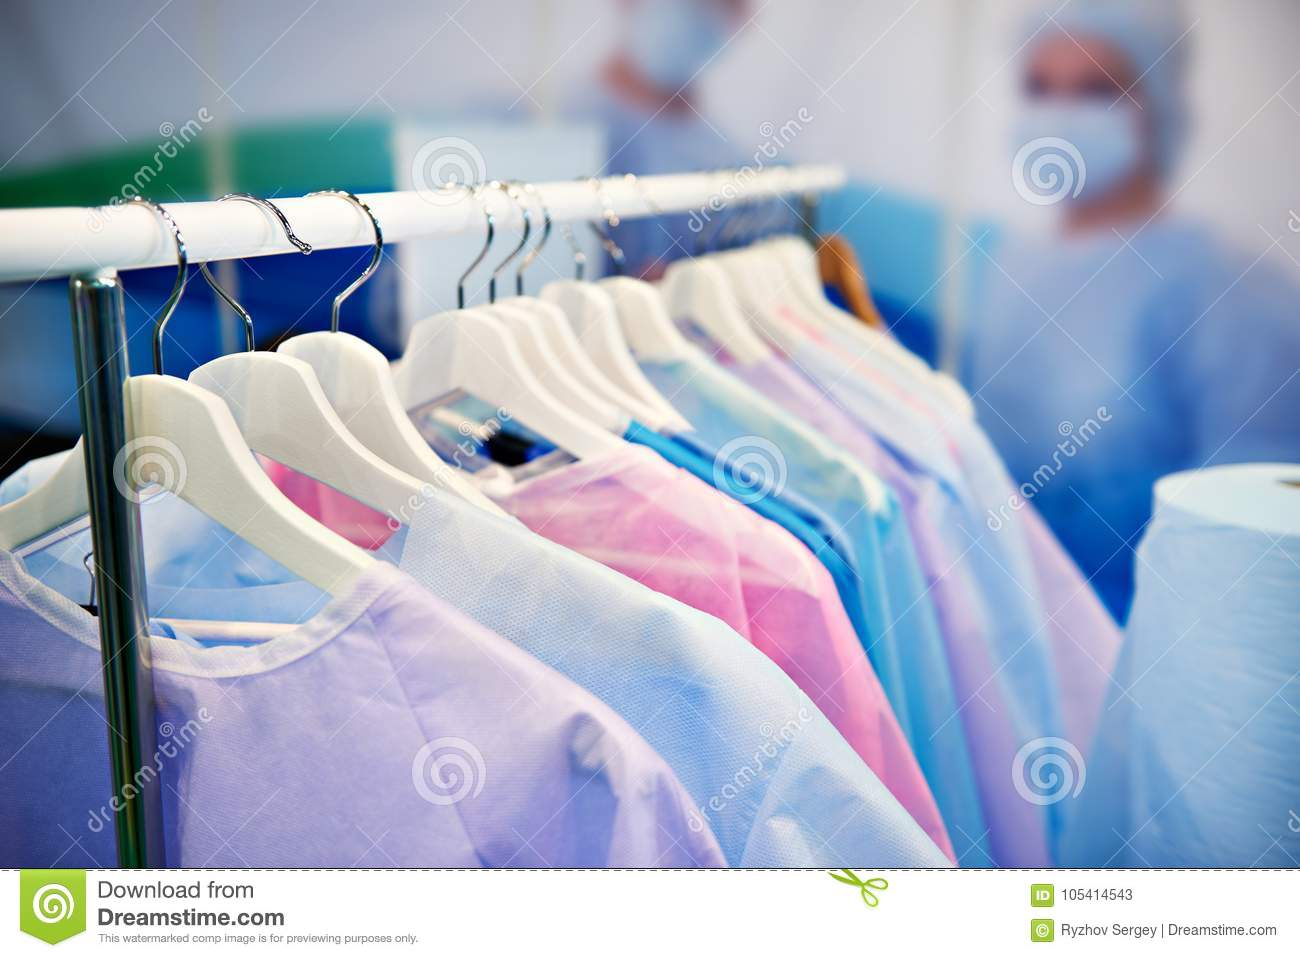 Disposable Medical Surgical Gowns Stock Image - Image of uniform ...